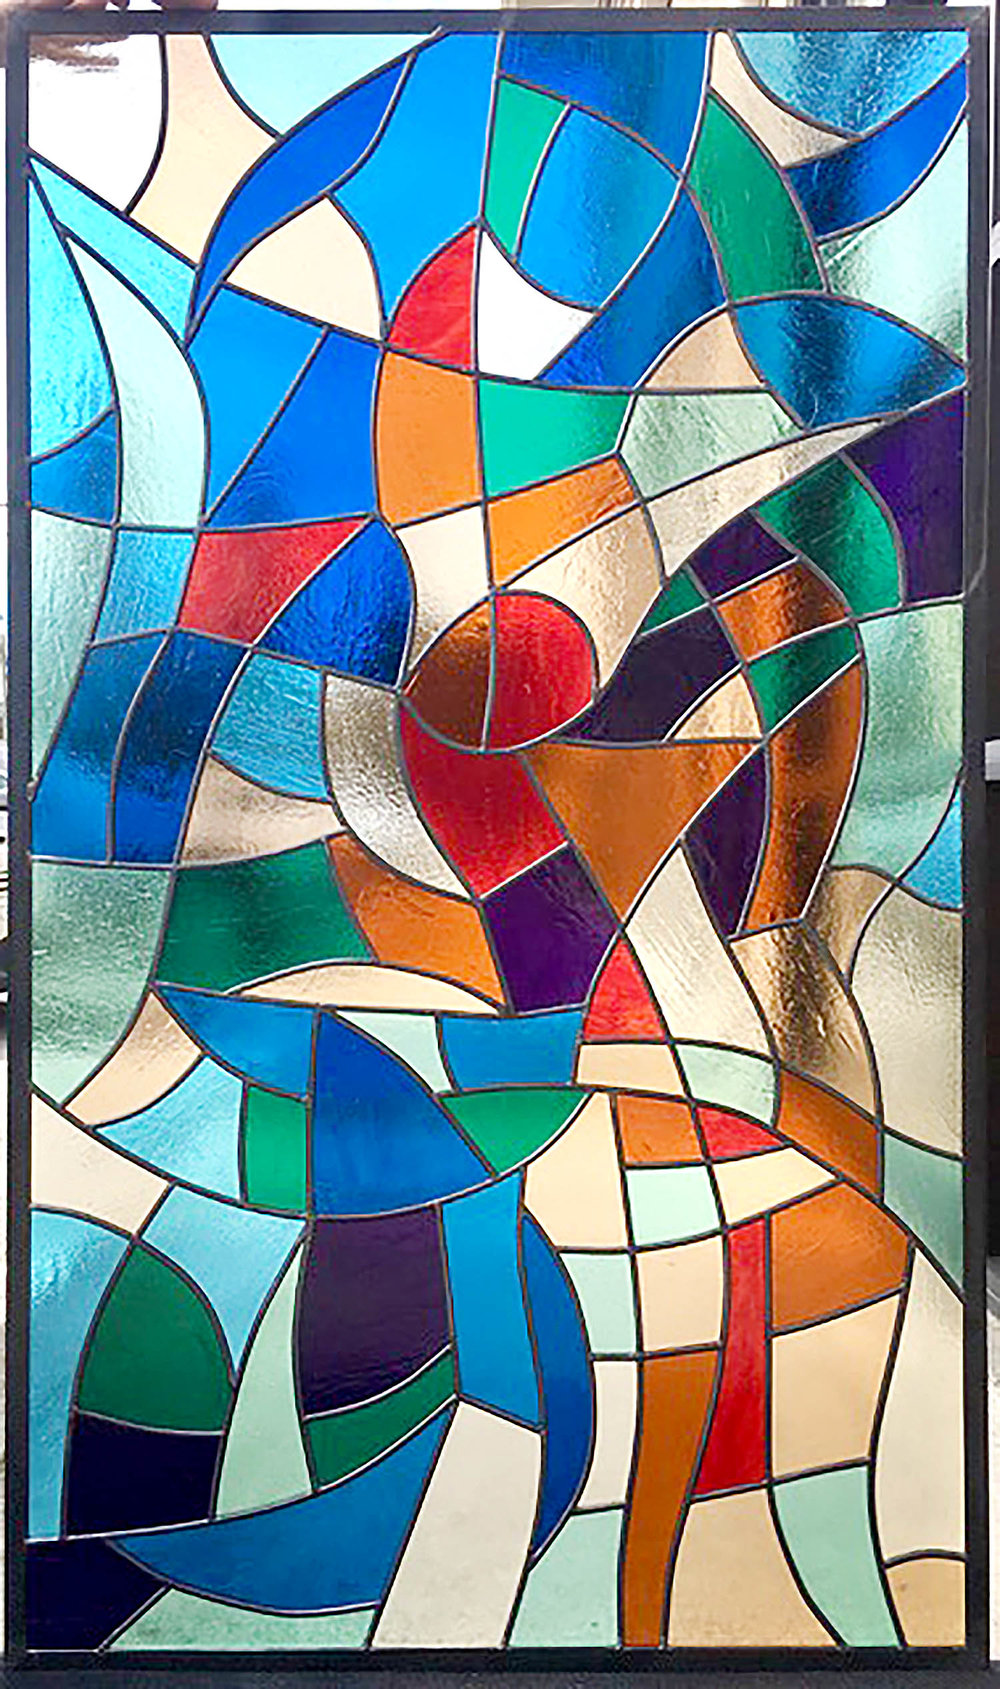 abstract art stained glass cathedral glass palo alto atherton menlo park san jose san francisco bay area legacy glass.jpg